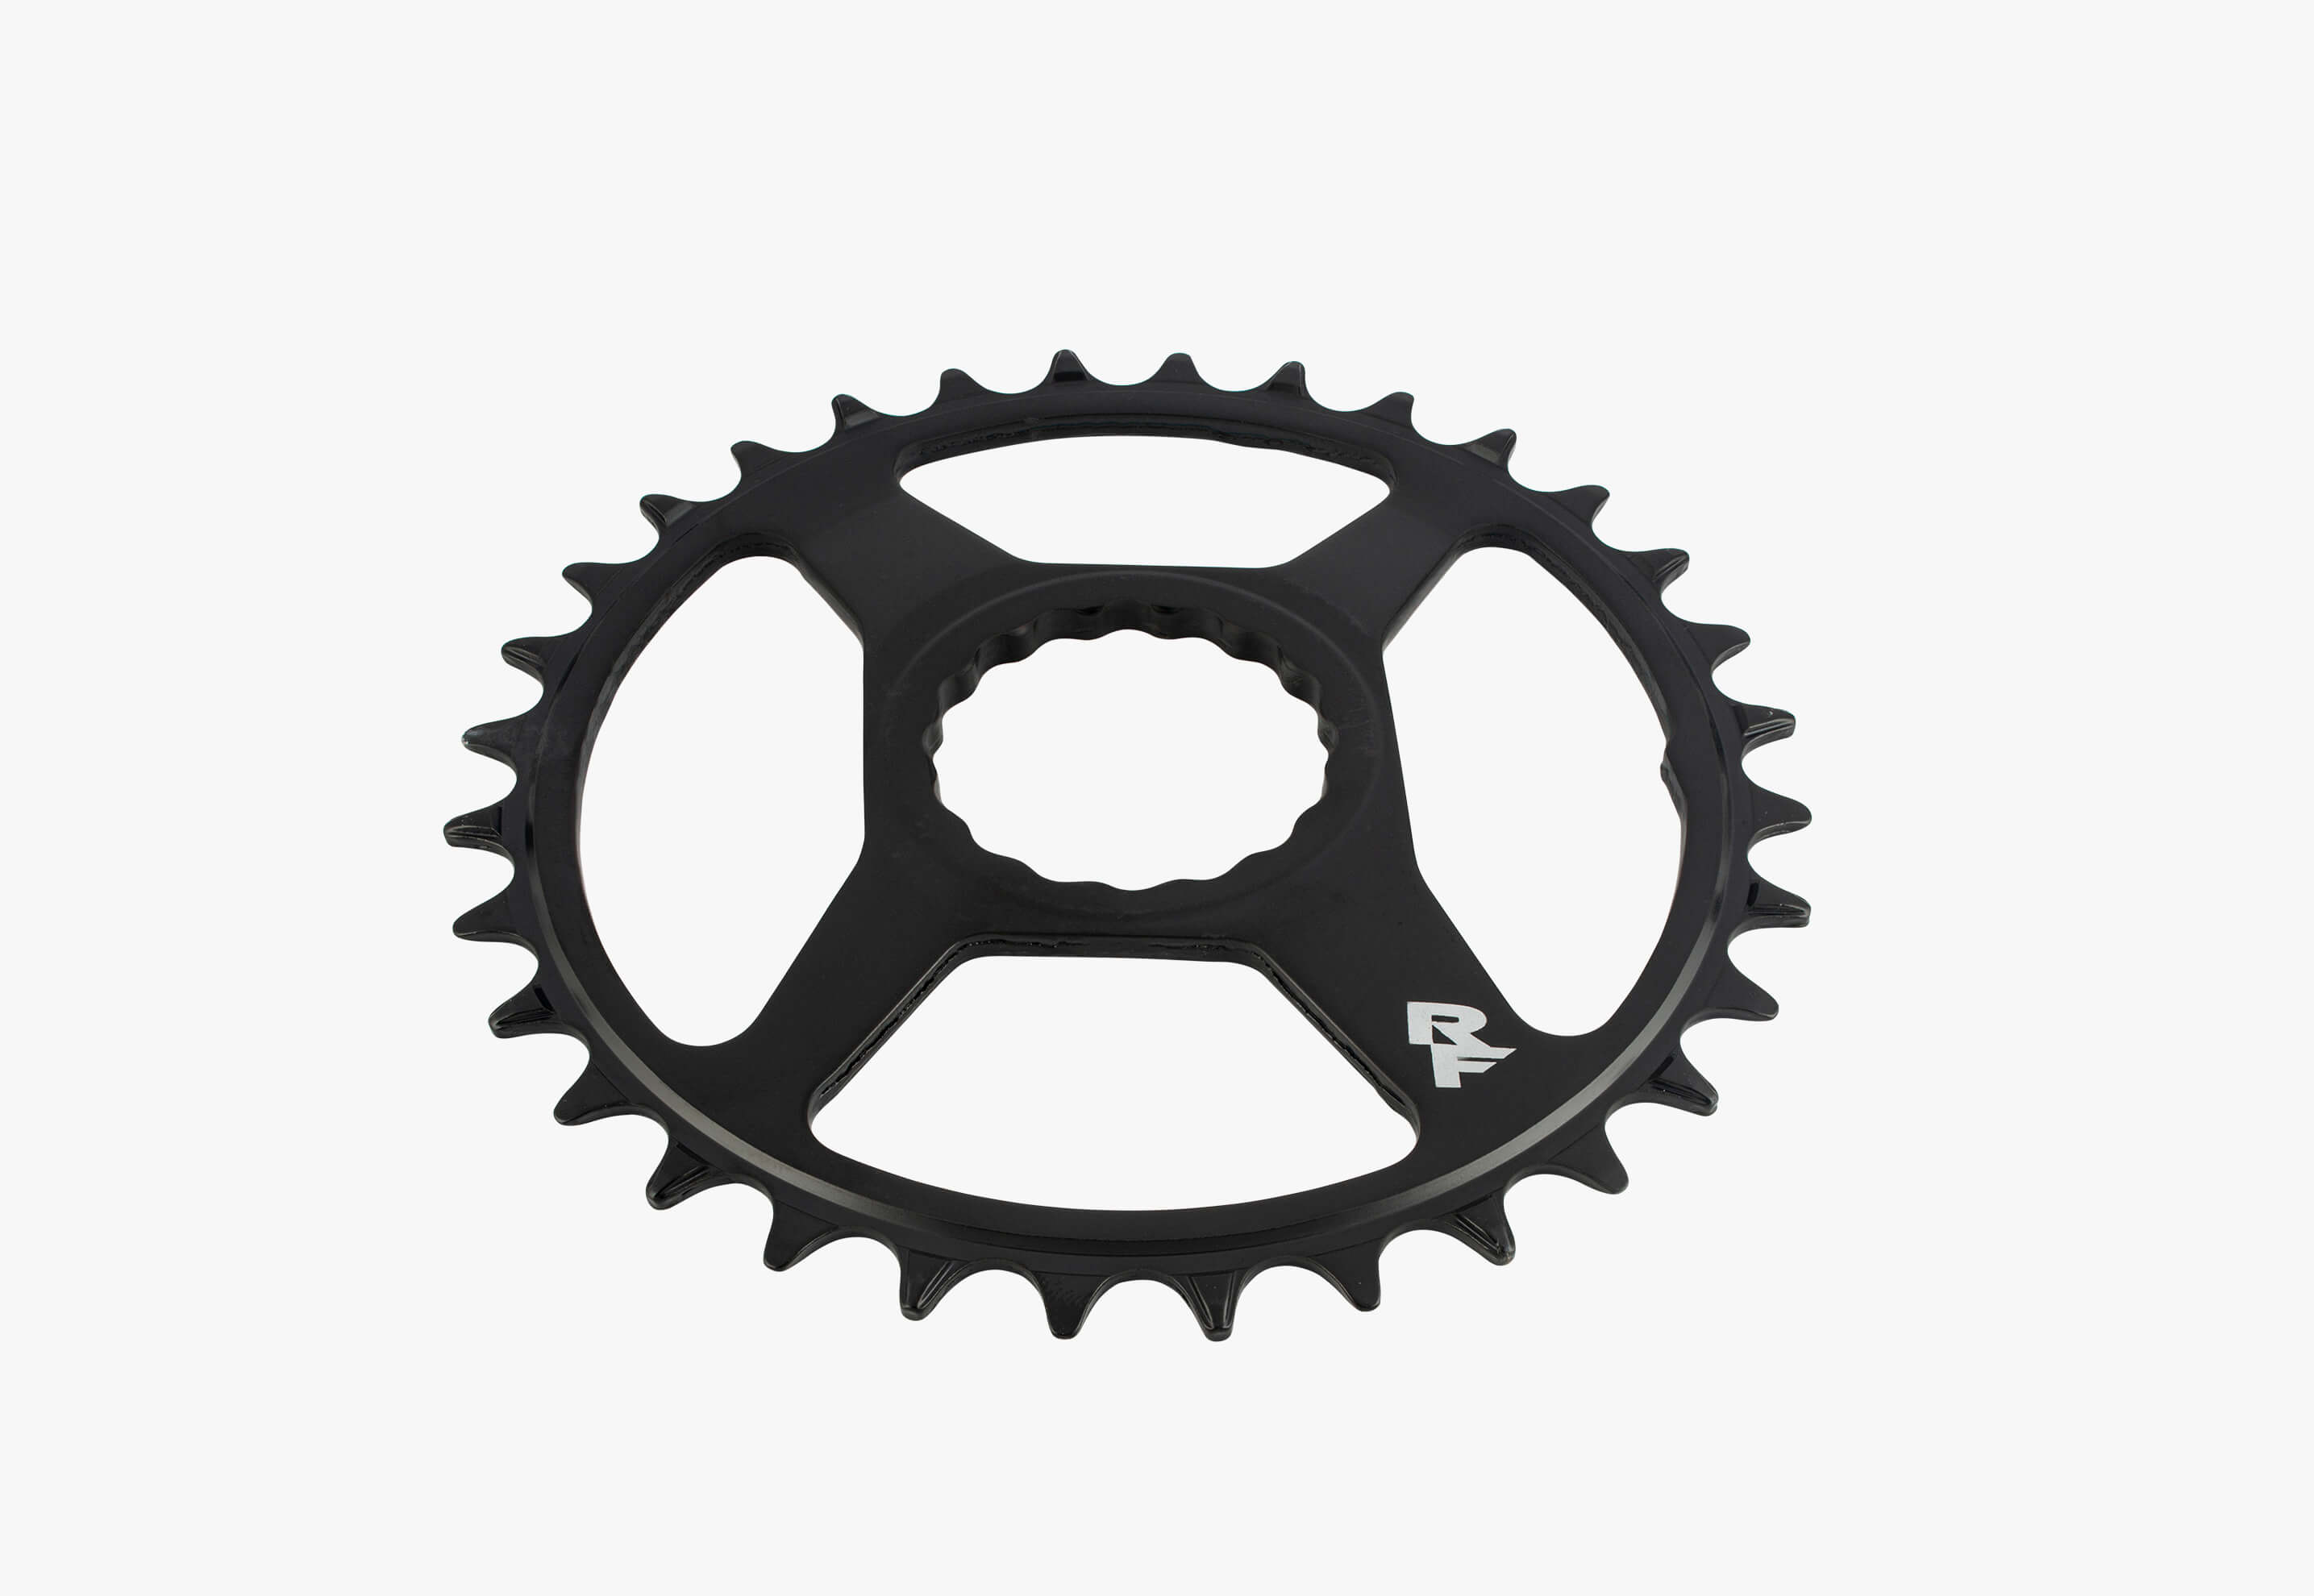 1x Chainring, Cinch Direct Mount, NW - Steel